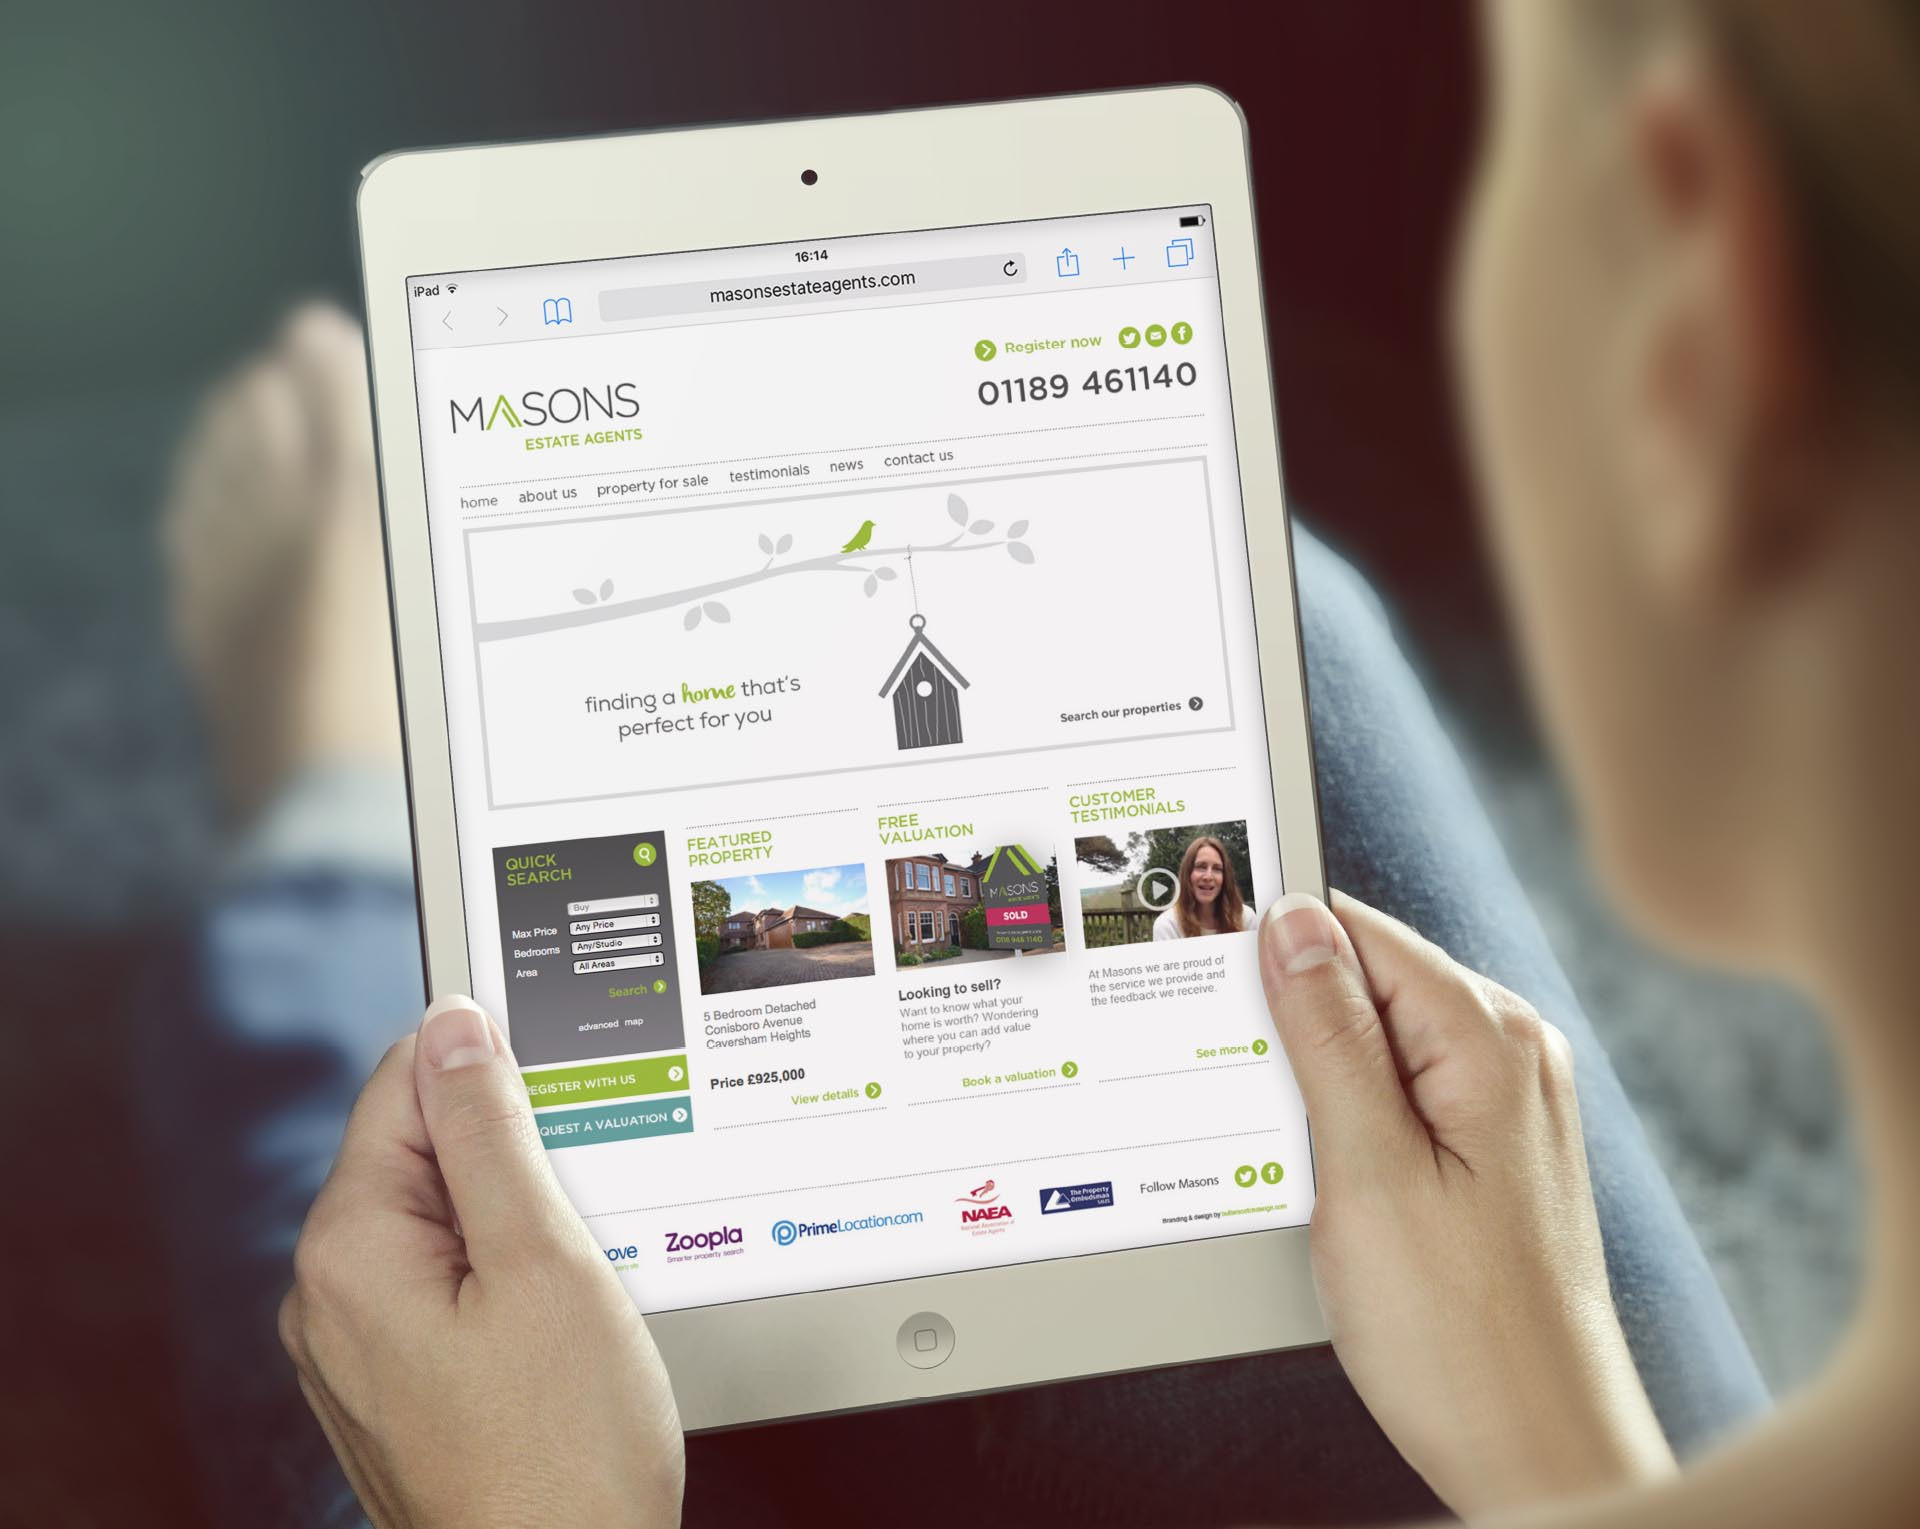 Masons-Estate-Agents-Advertising-Campaign-Reading-Website-Banners